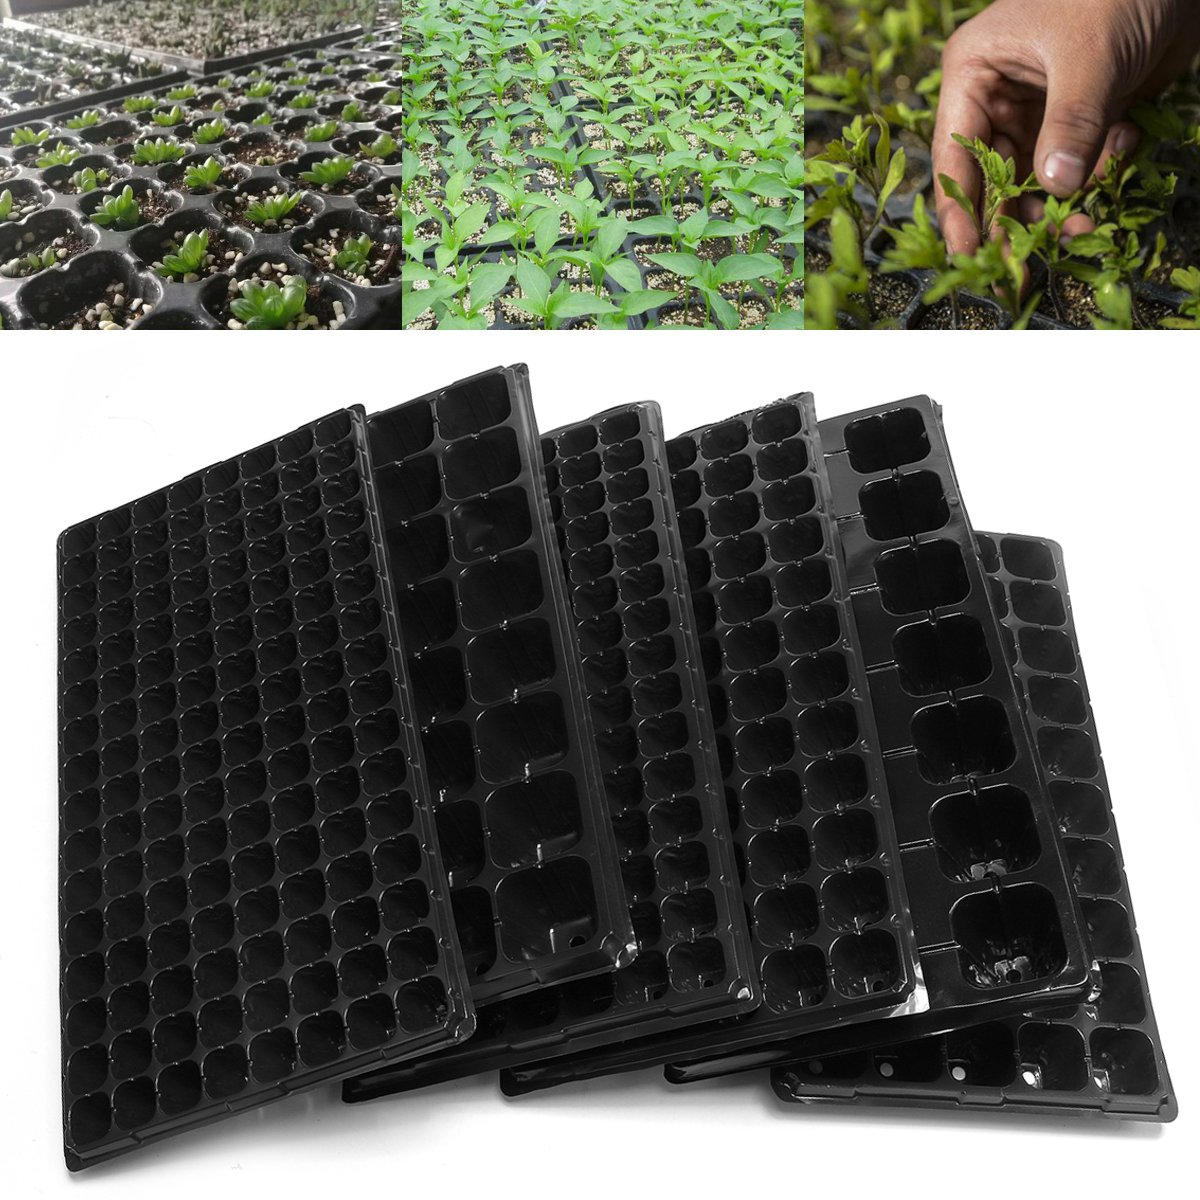 10Pcs CellS Seedling Starter Tray Extra Strength Seed Germination Plant Flower Pots Nursery Grow Box Propagation For Garden